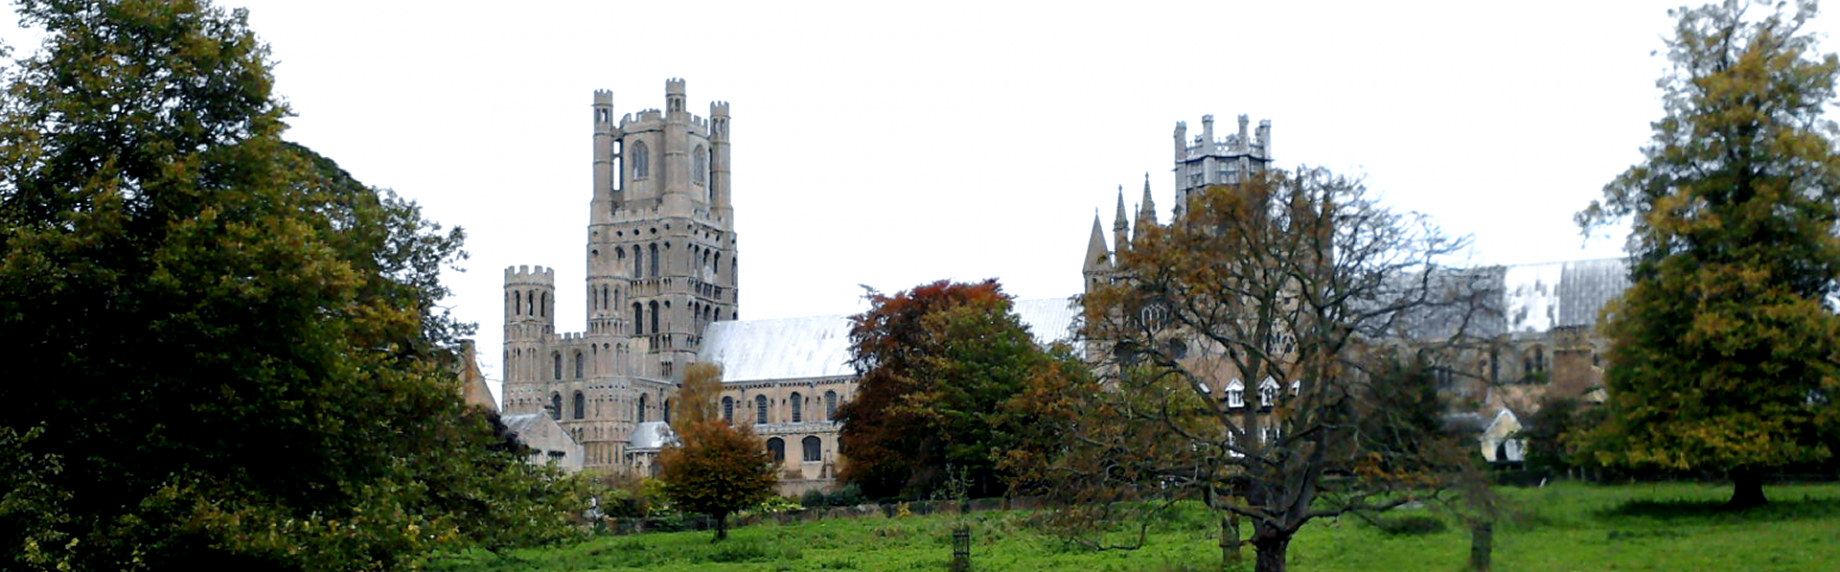 Ely Cathedral View